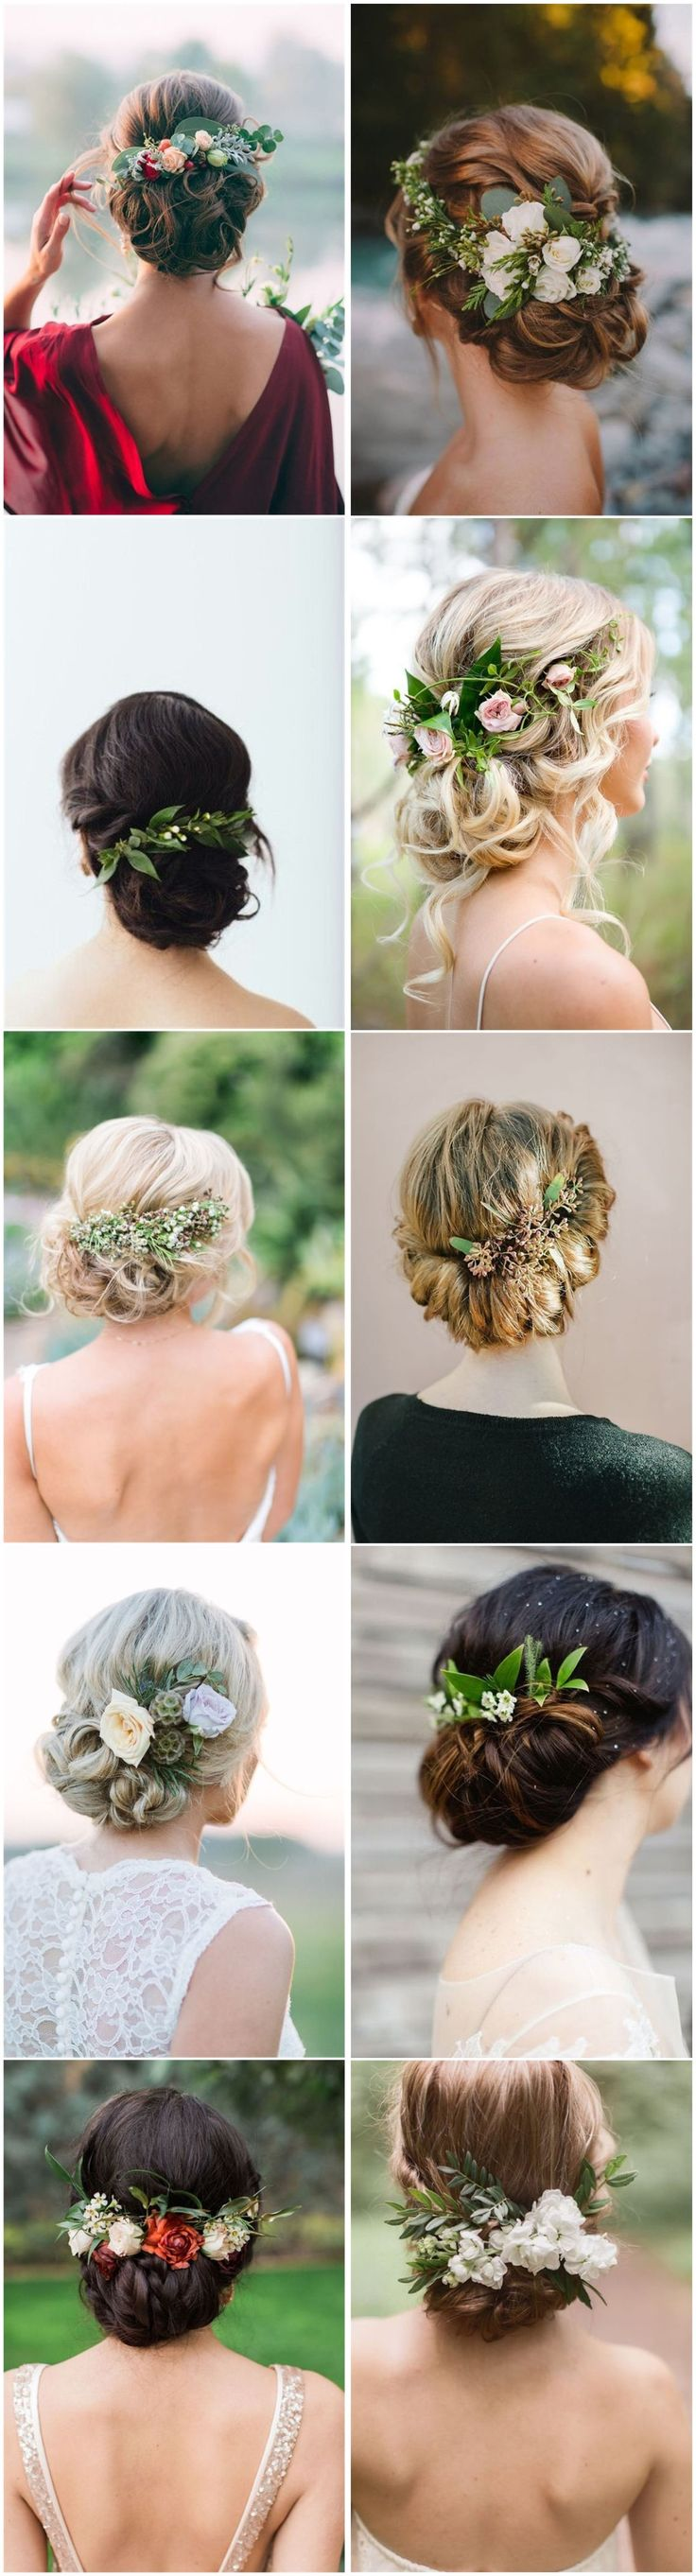 Wedding Hairstyles » 18 Wedding Updo Hairstyles with Greenery Decorations >>  ?? See more: http://www.weddinginclude.com/2017/03/wedding-updo-hairstyles-with-greenery-decorations/